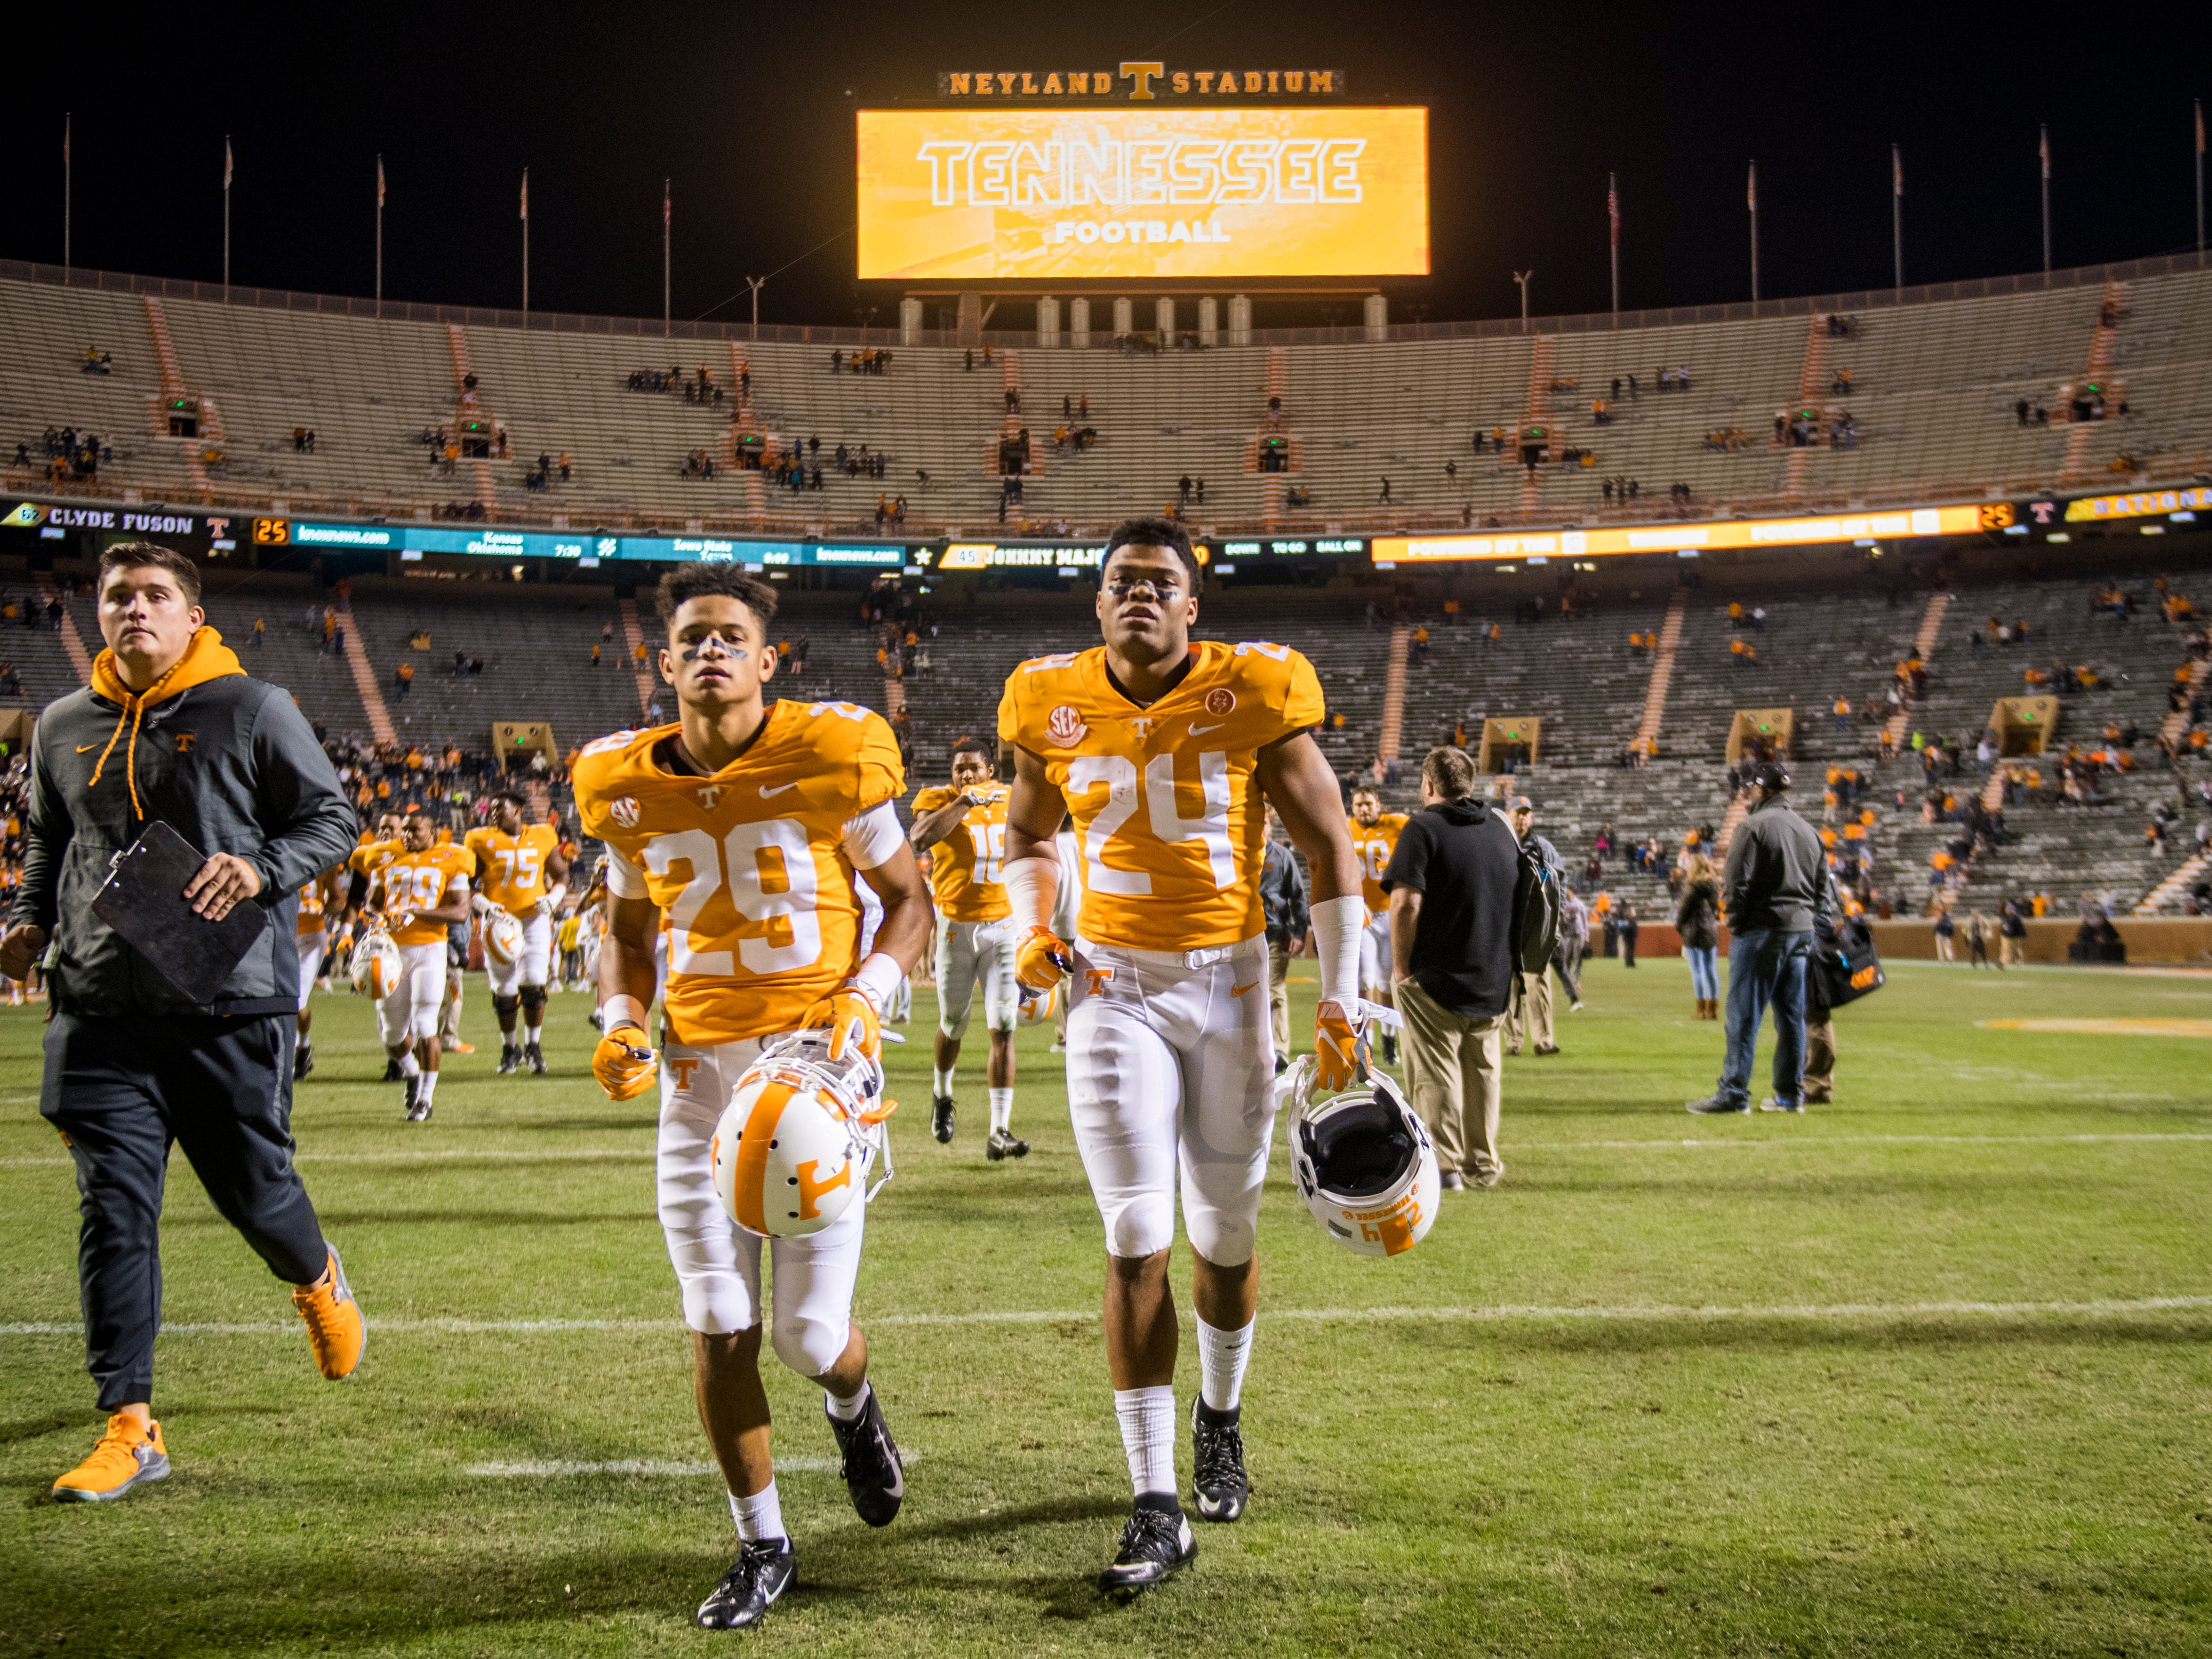 Tennessee defensive back Todd Kelly Jr. (24) and Tennessee defensive back Brandon Davis (29) run off the field after the Tennessee Volunteers game against the Missouri Tigers in Neyland Stadium on Saturday, November 17, 2018.